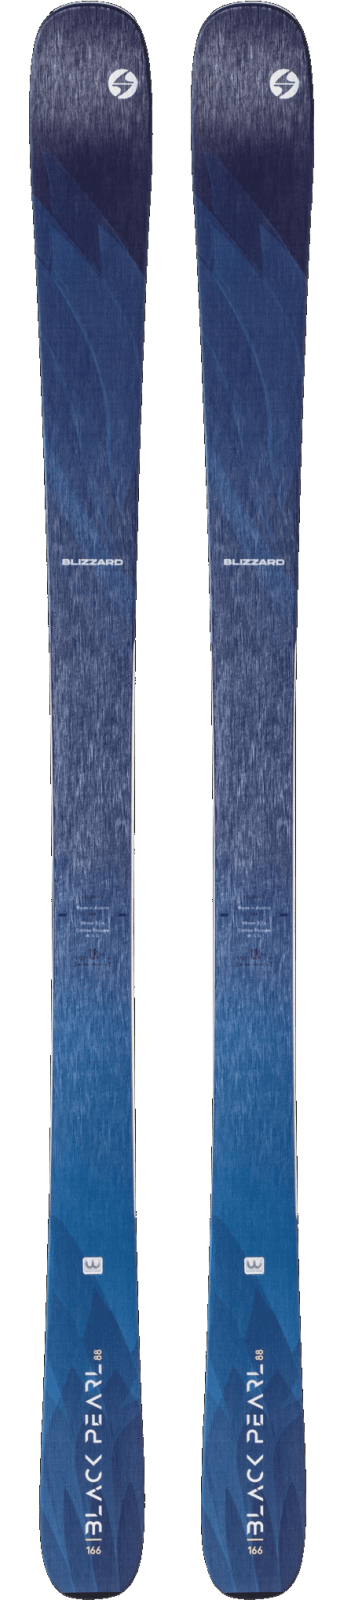 2020 Blizzard Black Peral 88 Women's Ski